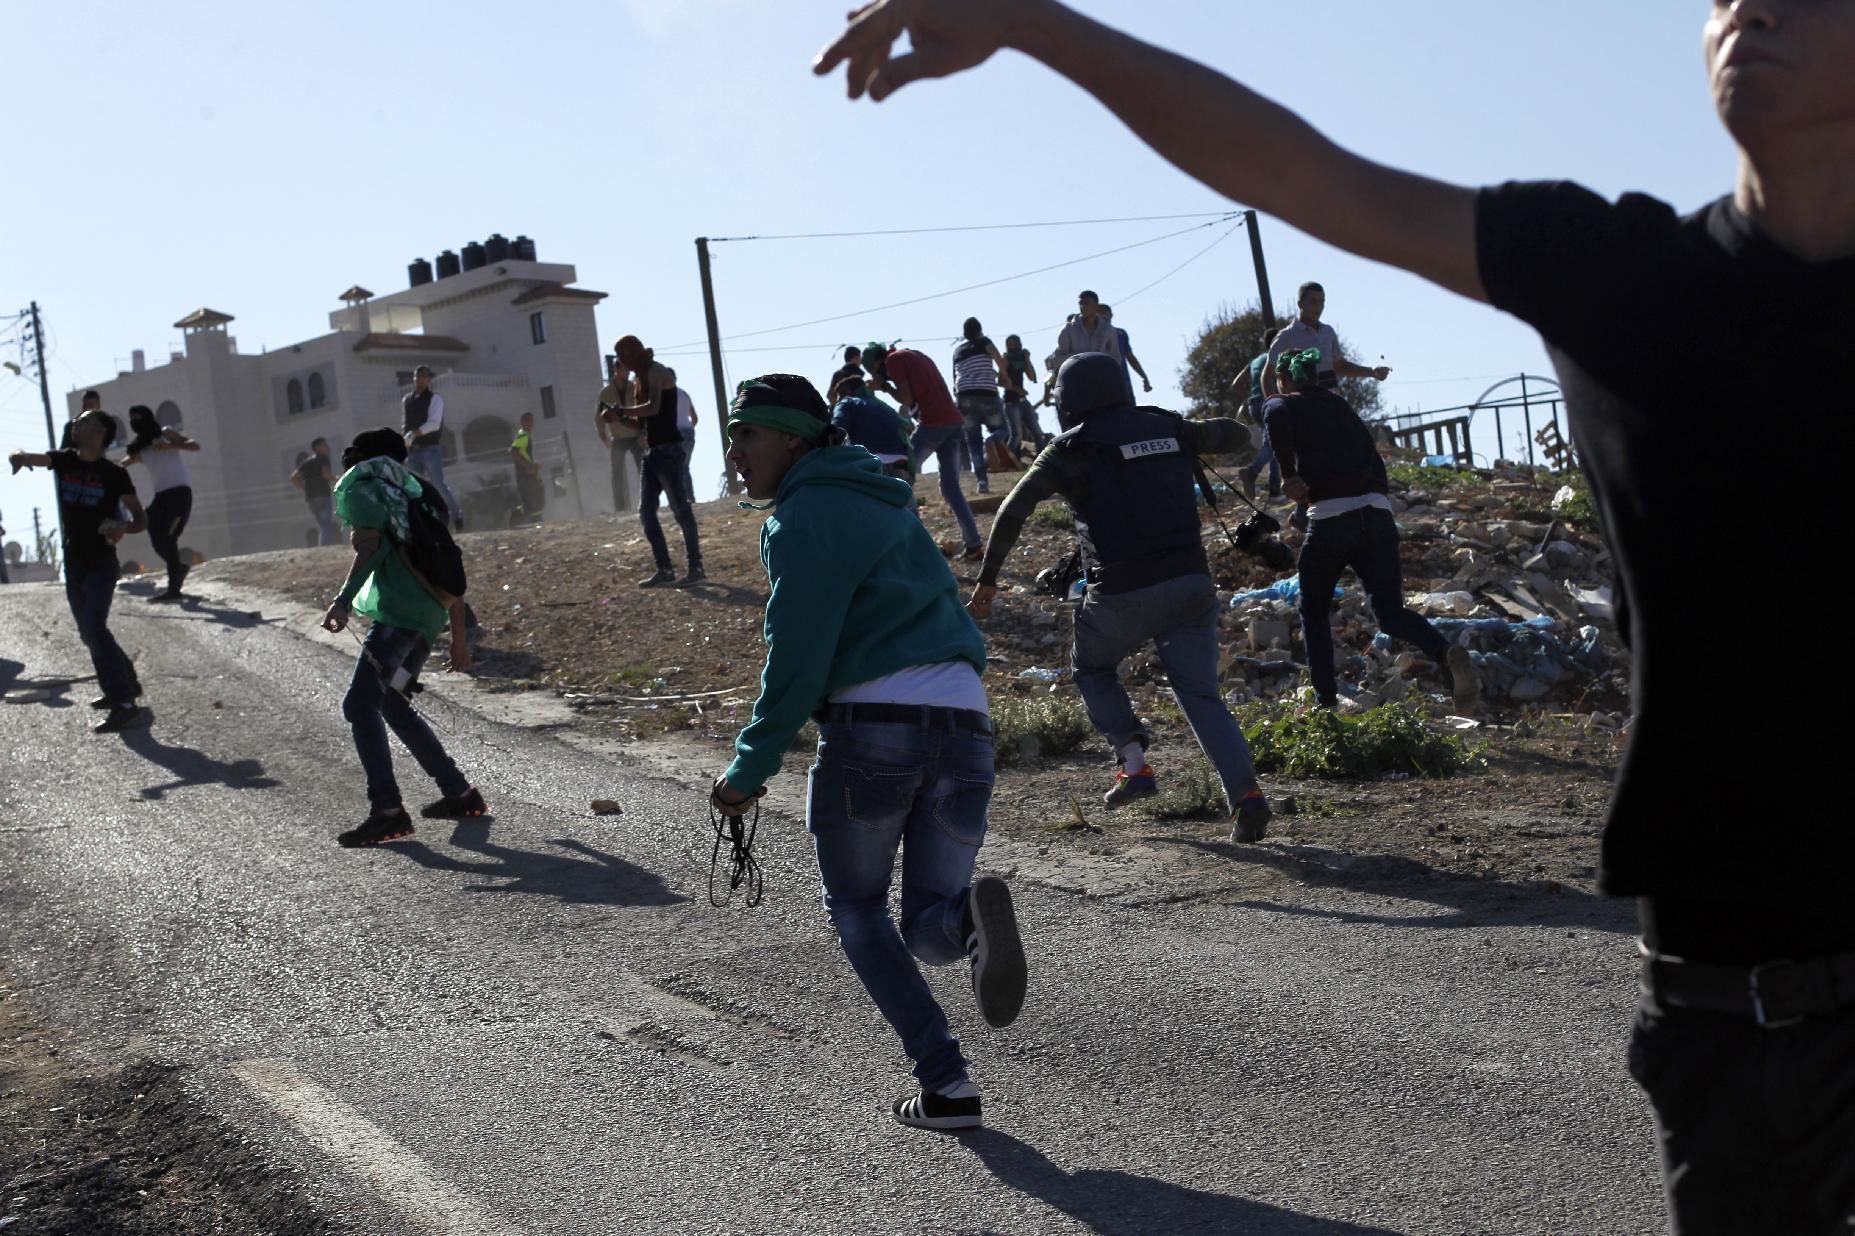 Palestinians from the Jalazoun refugee camp clash with Israeli security forces at the entrance of the Jewish West Bank settlement Beit El, north of Ramallah, after a march against Israeli restrictions on the Al-Aqsa mosque, October 24, 2014 (AFP Photo/Abbas Momani)